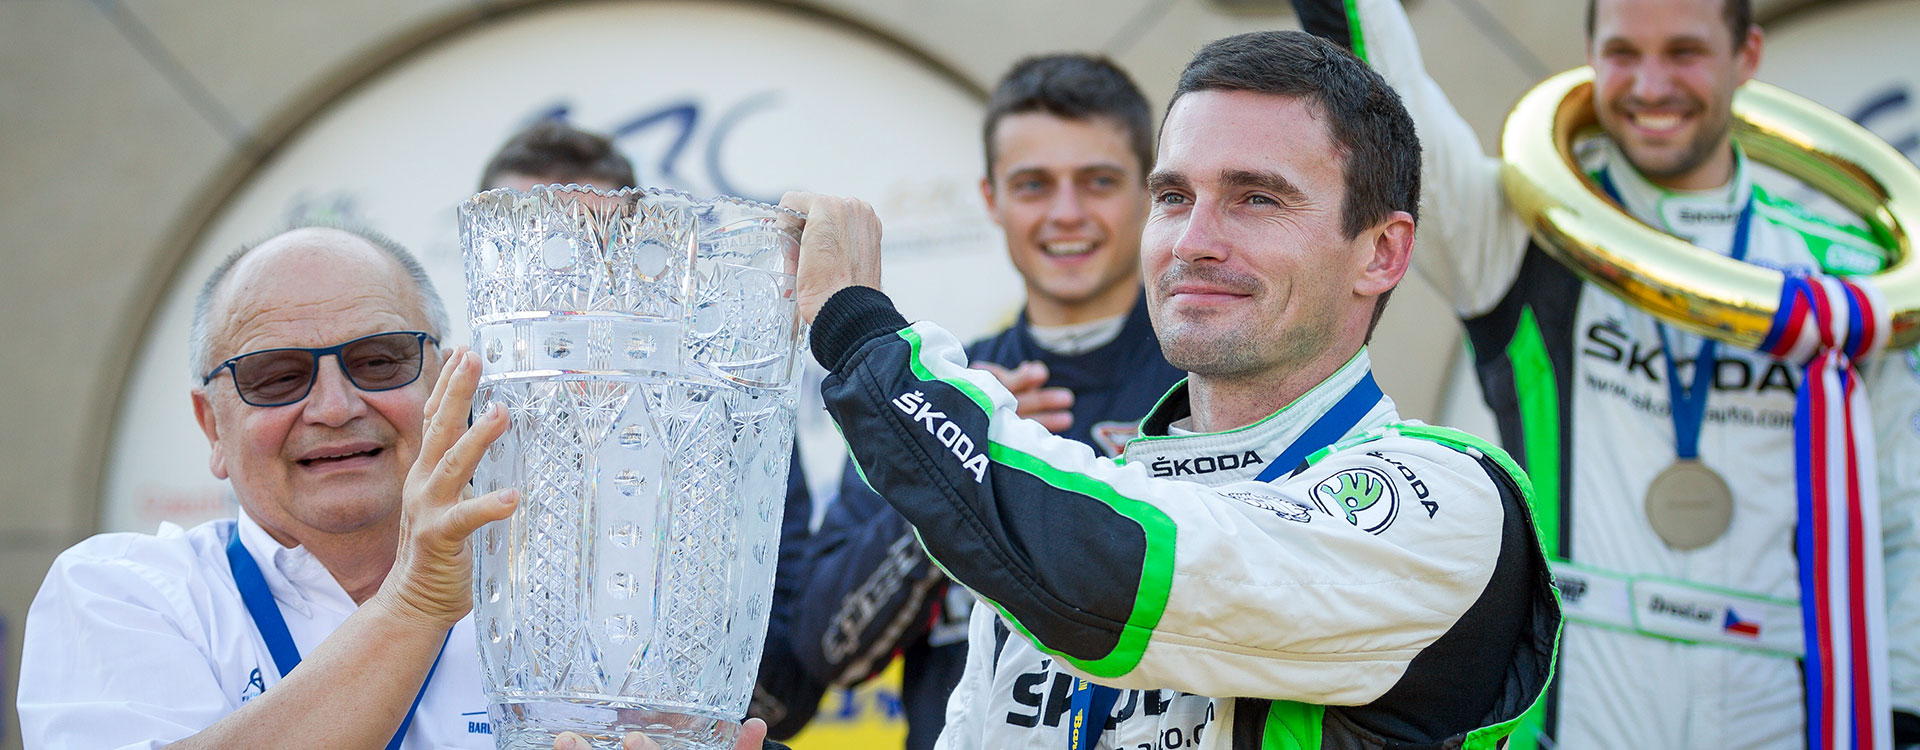 A stellar season: ŠKODA FABIA R5 triumphs all around the world